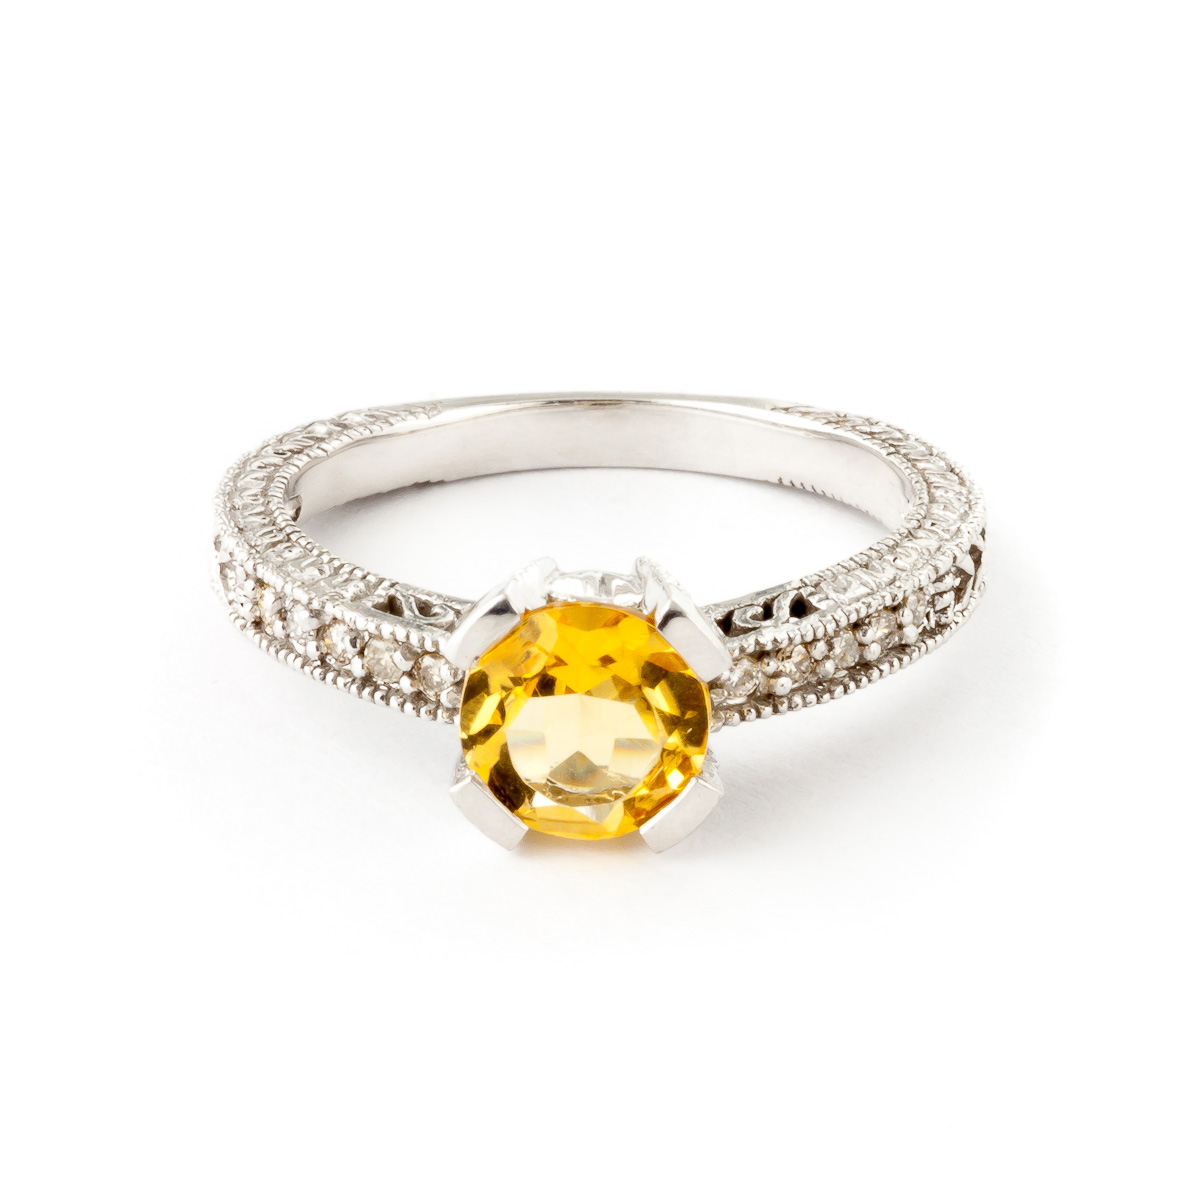 Citrine and Diamond Renaissance Ring 1.5ct in 9ct White Gold